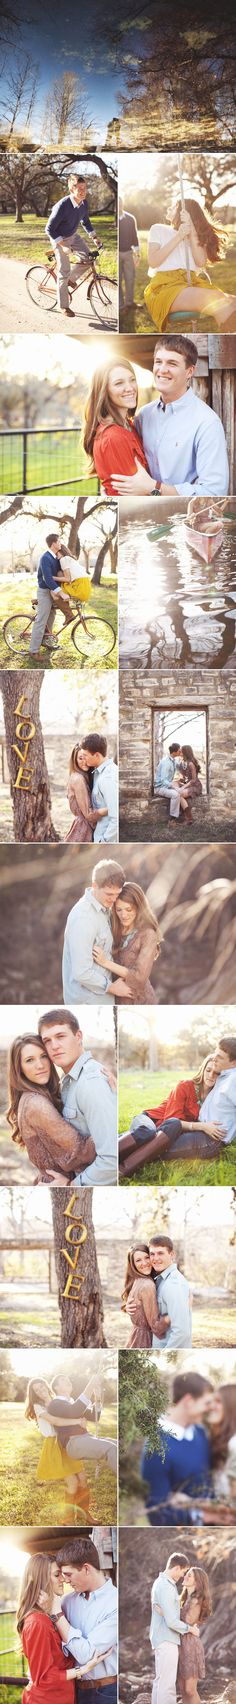 This website has the cutest engagement photo shoots! | Couples and engagements photography